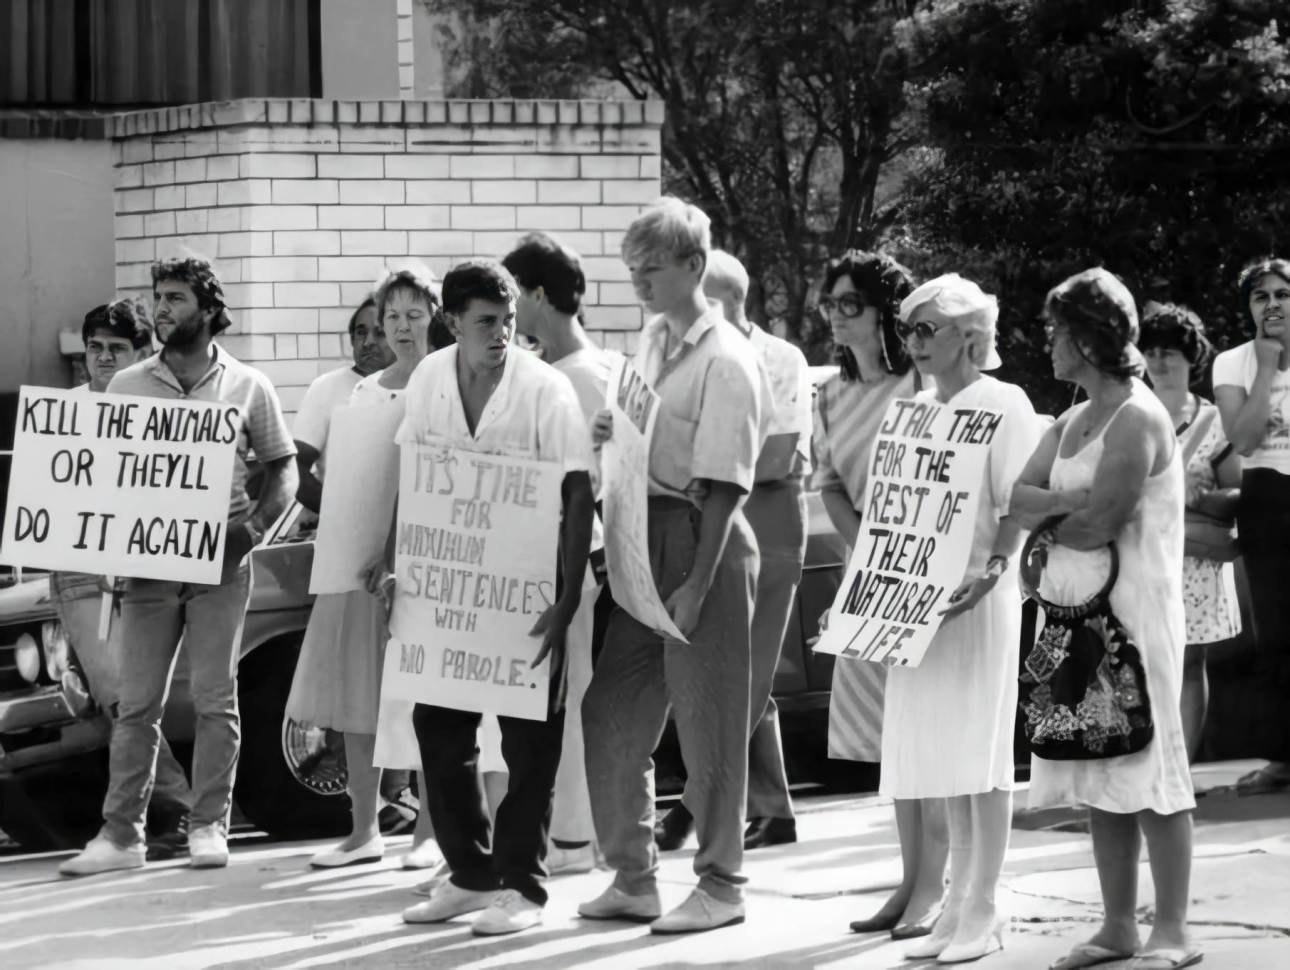 Hundreds of people gathered outside Blacktown police station when the Anita Cobby's murderers were arrested. Photo: News Local